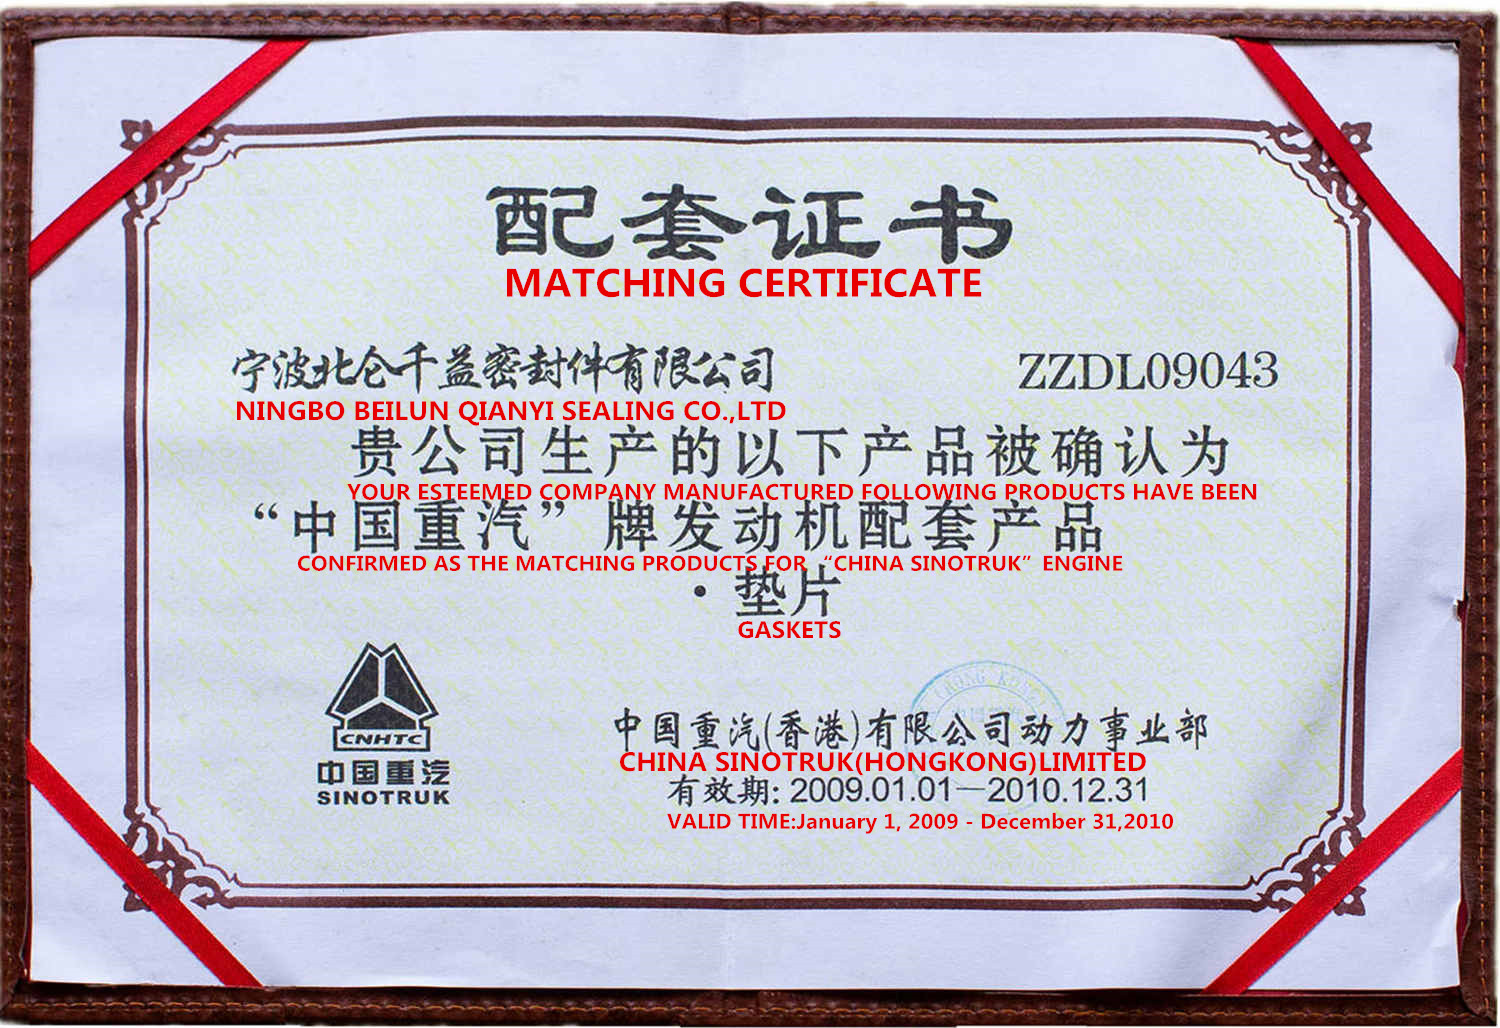 2009-2010 Year SINOTRUK OE Certificate_English'